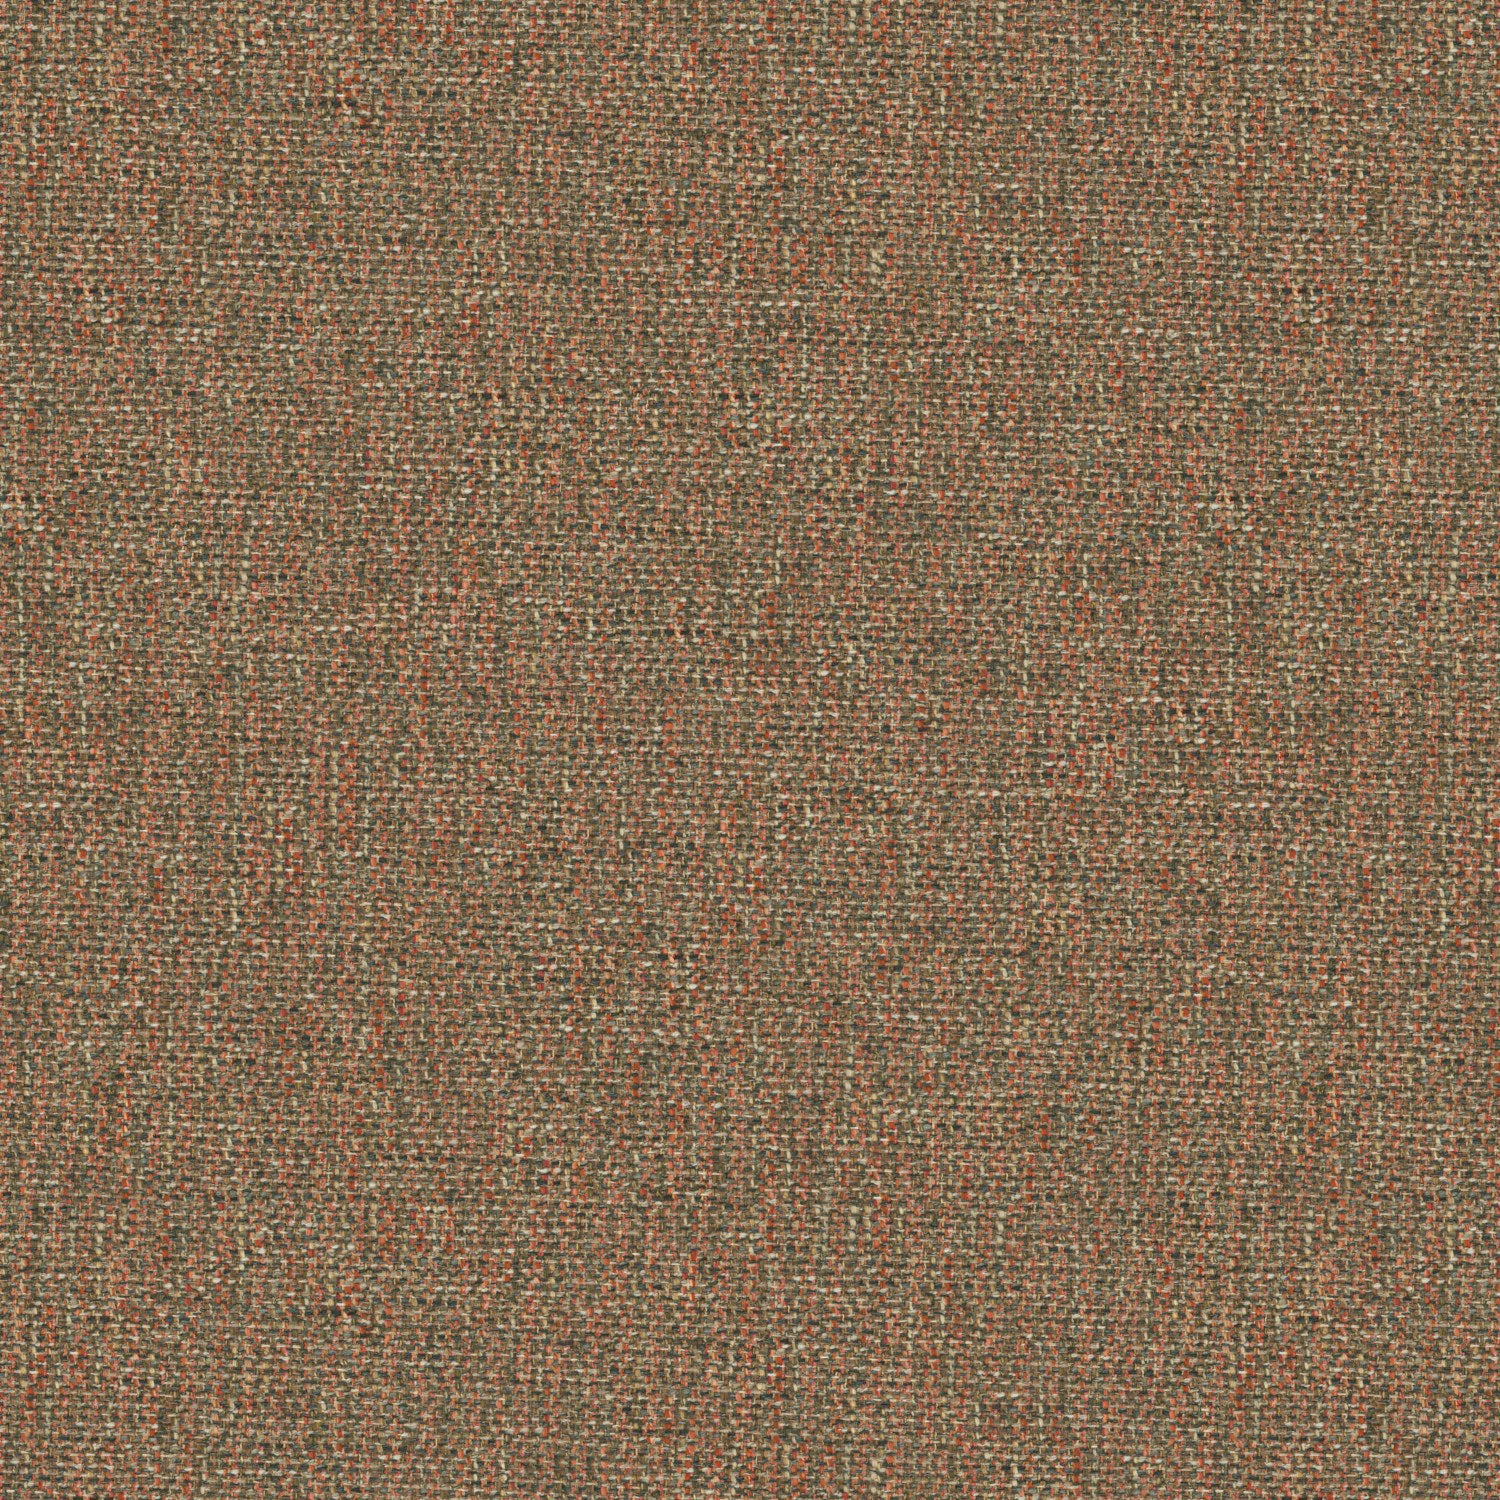 Fabric swatch of a stain resistant weave fabric with a tweed design in mulit-colours